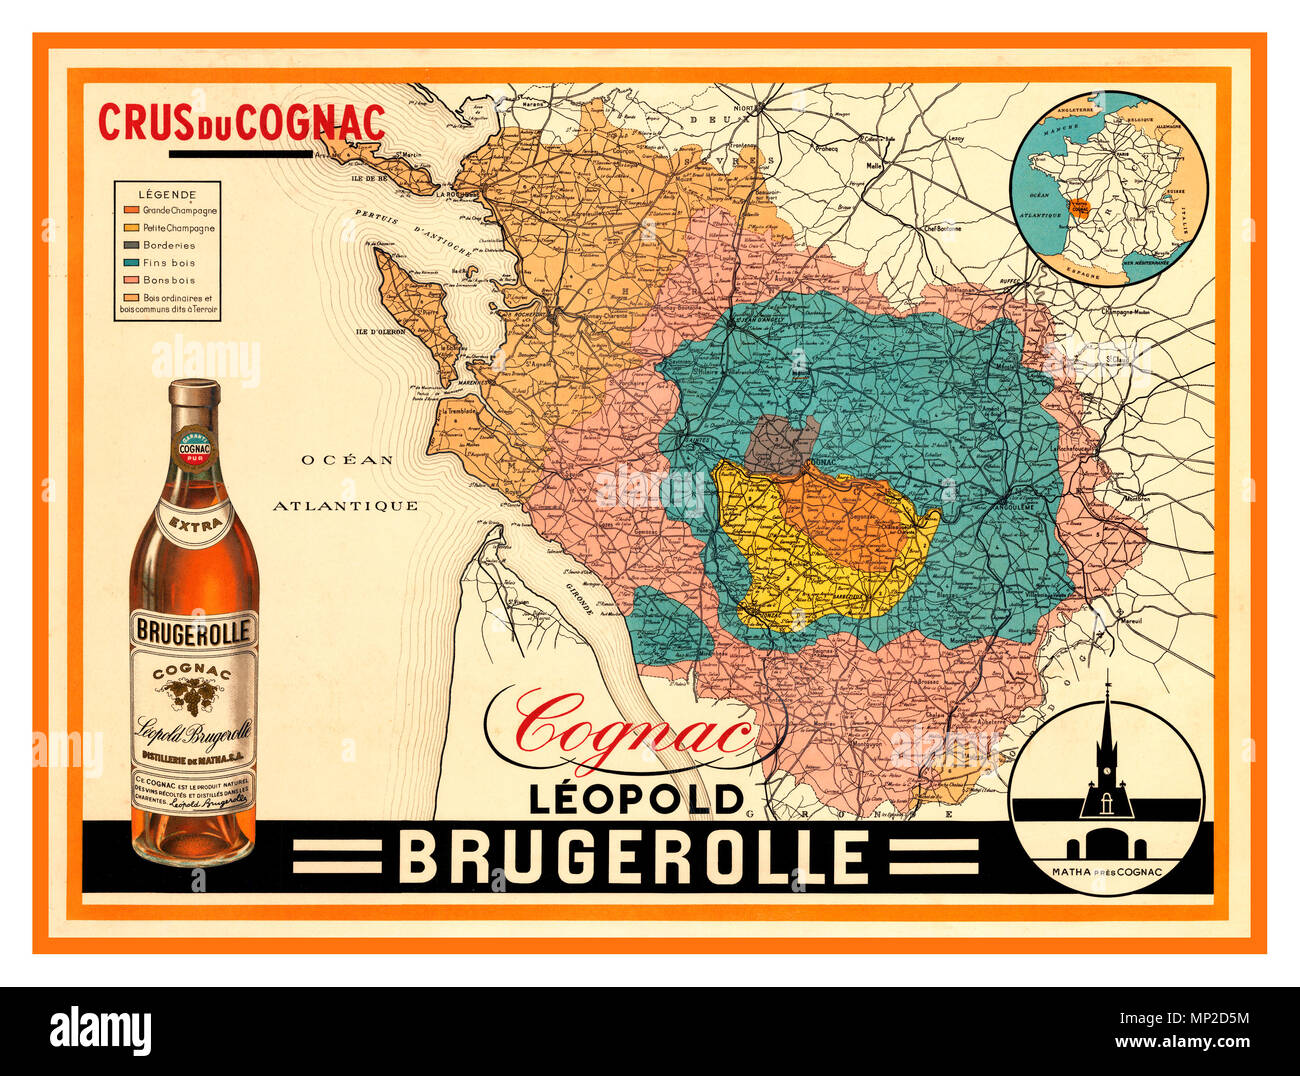 Map Of France Poster.Vintage 1920 S French Crus Du Cognac Poster Map Produced In Part By